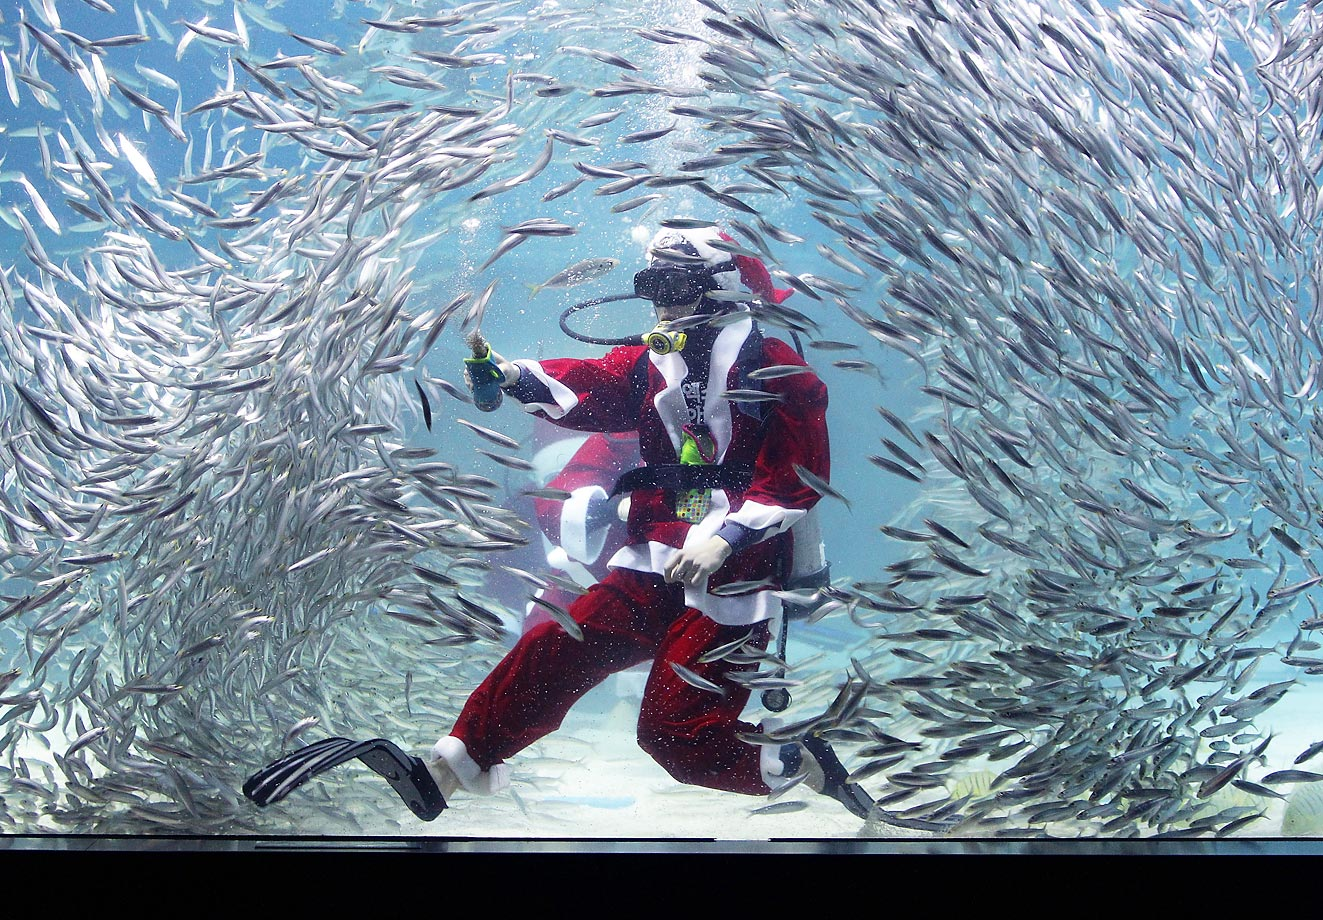 Santa Claus scuba dives with sardines at the Coex Aquarium in Seoul, South Korea.